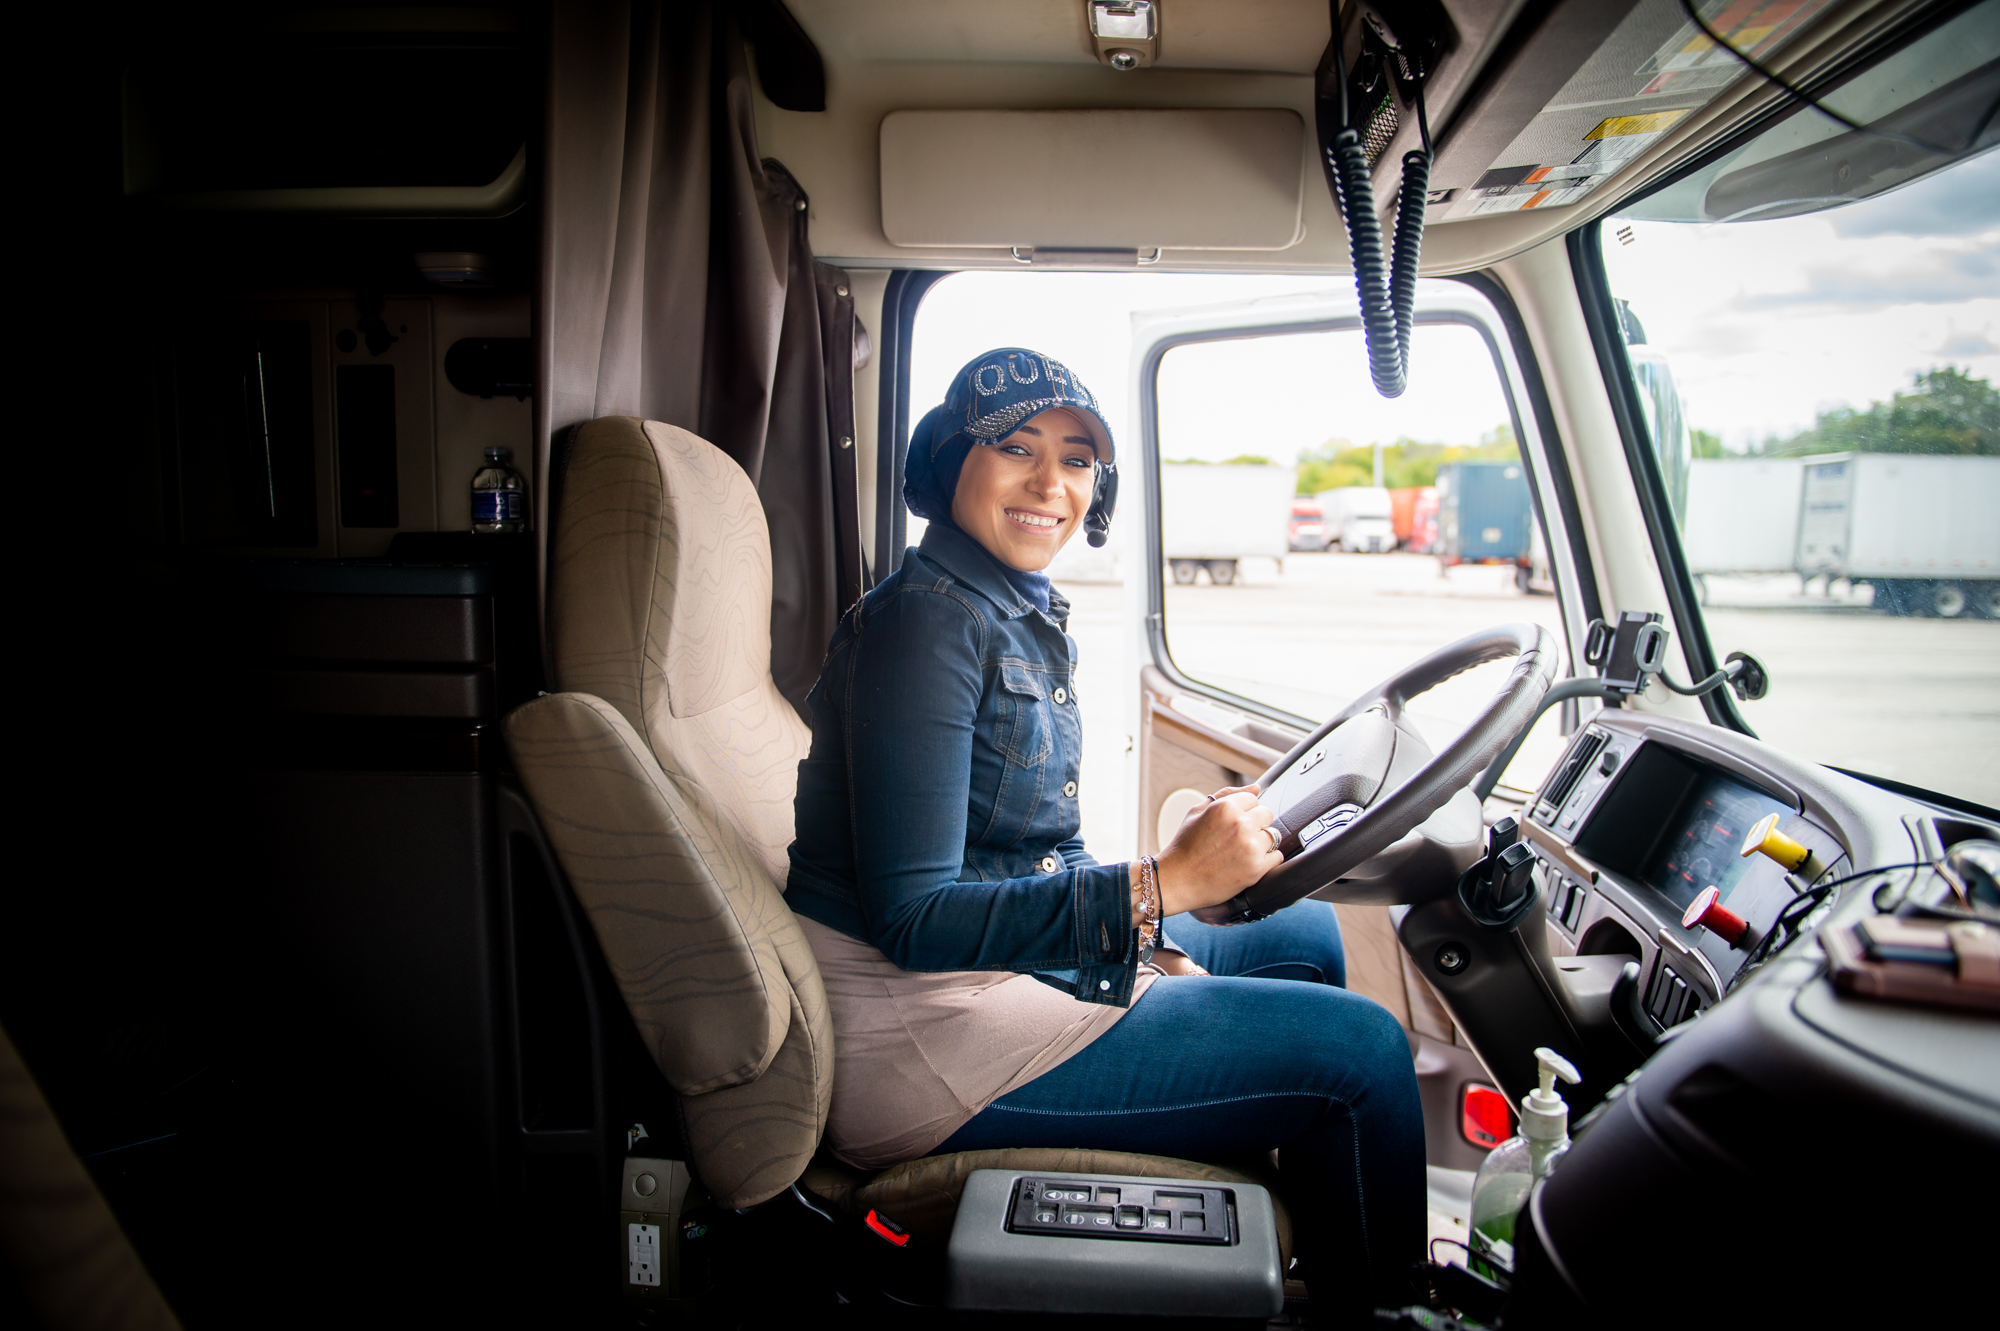 Lady Truck Driver from Jerusalem has Passion for her Job